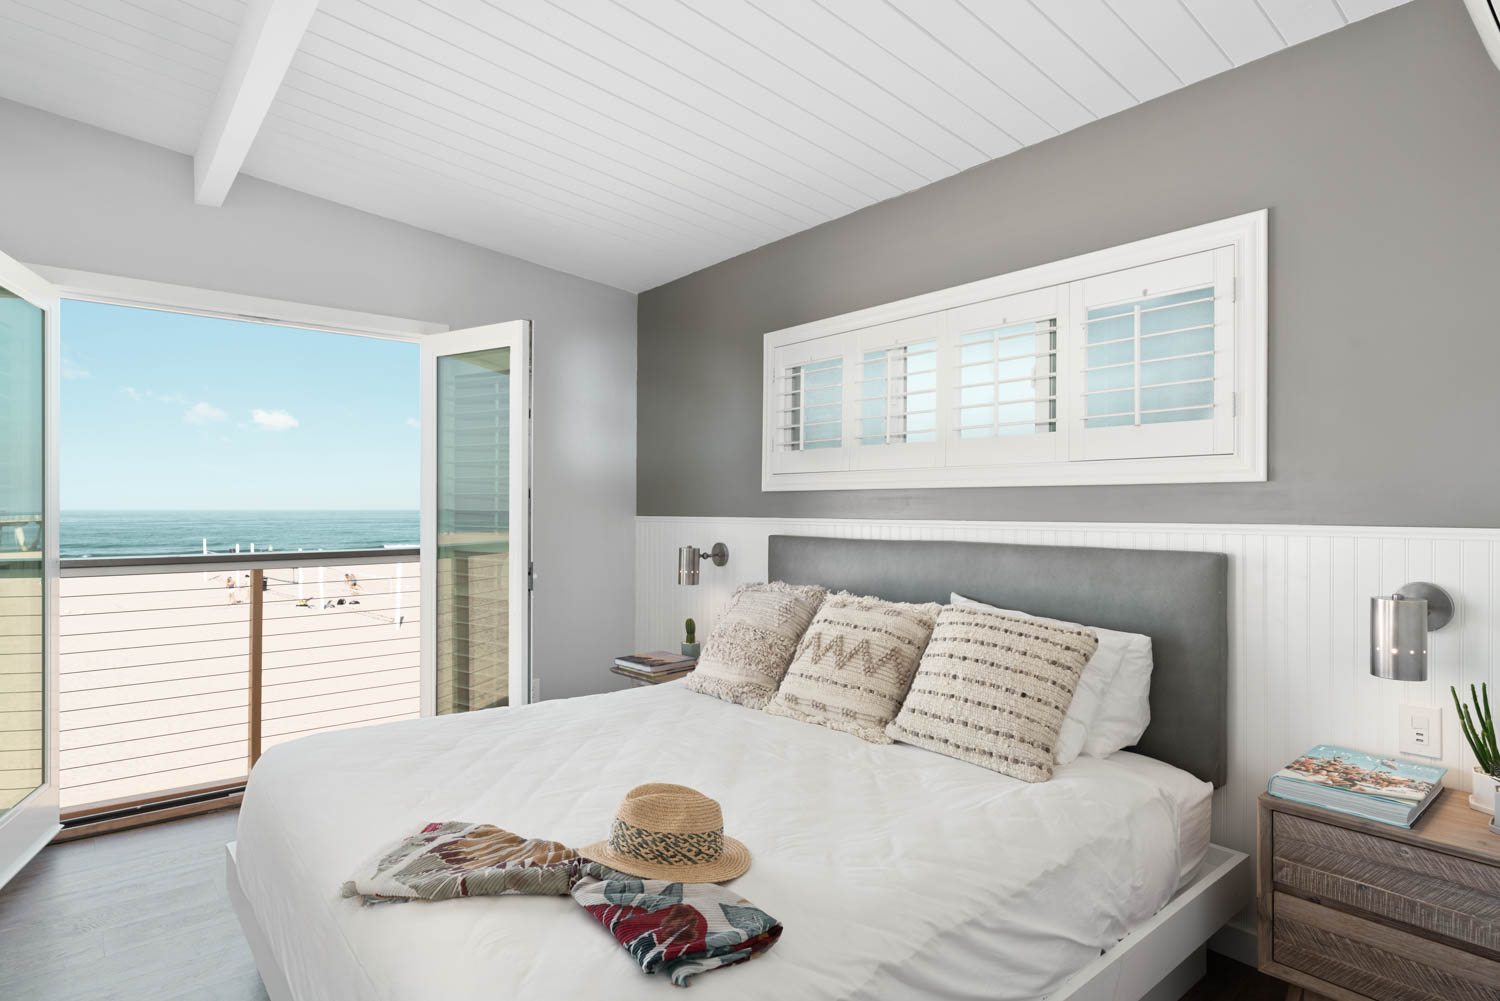 Oceanfront King with Juliette Balcony | 340 sq ft